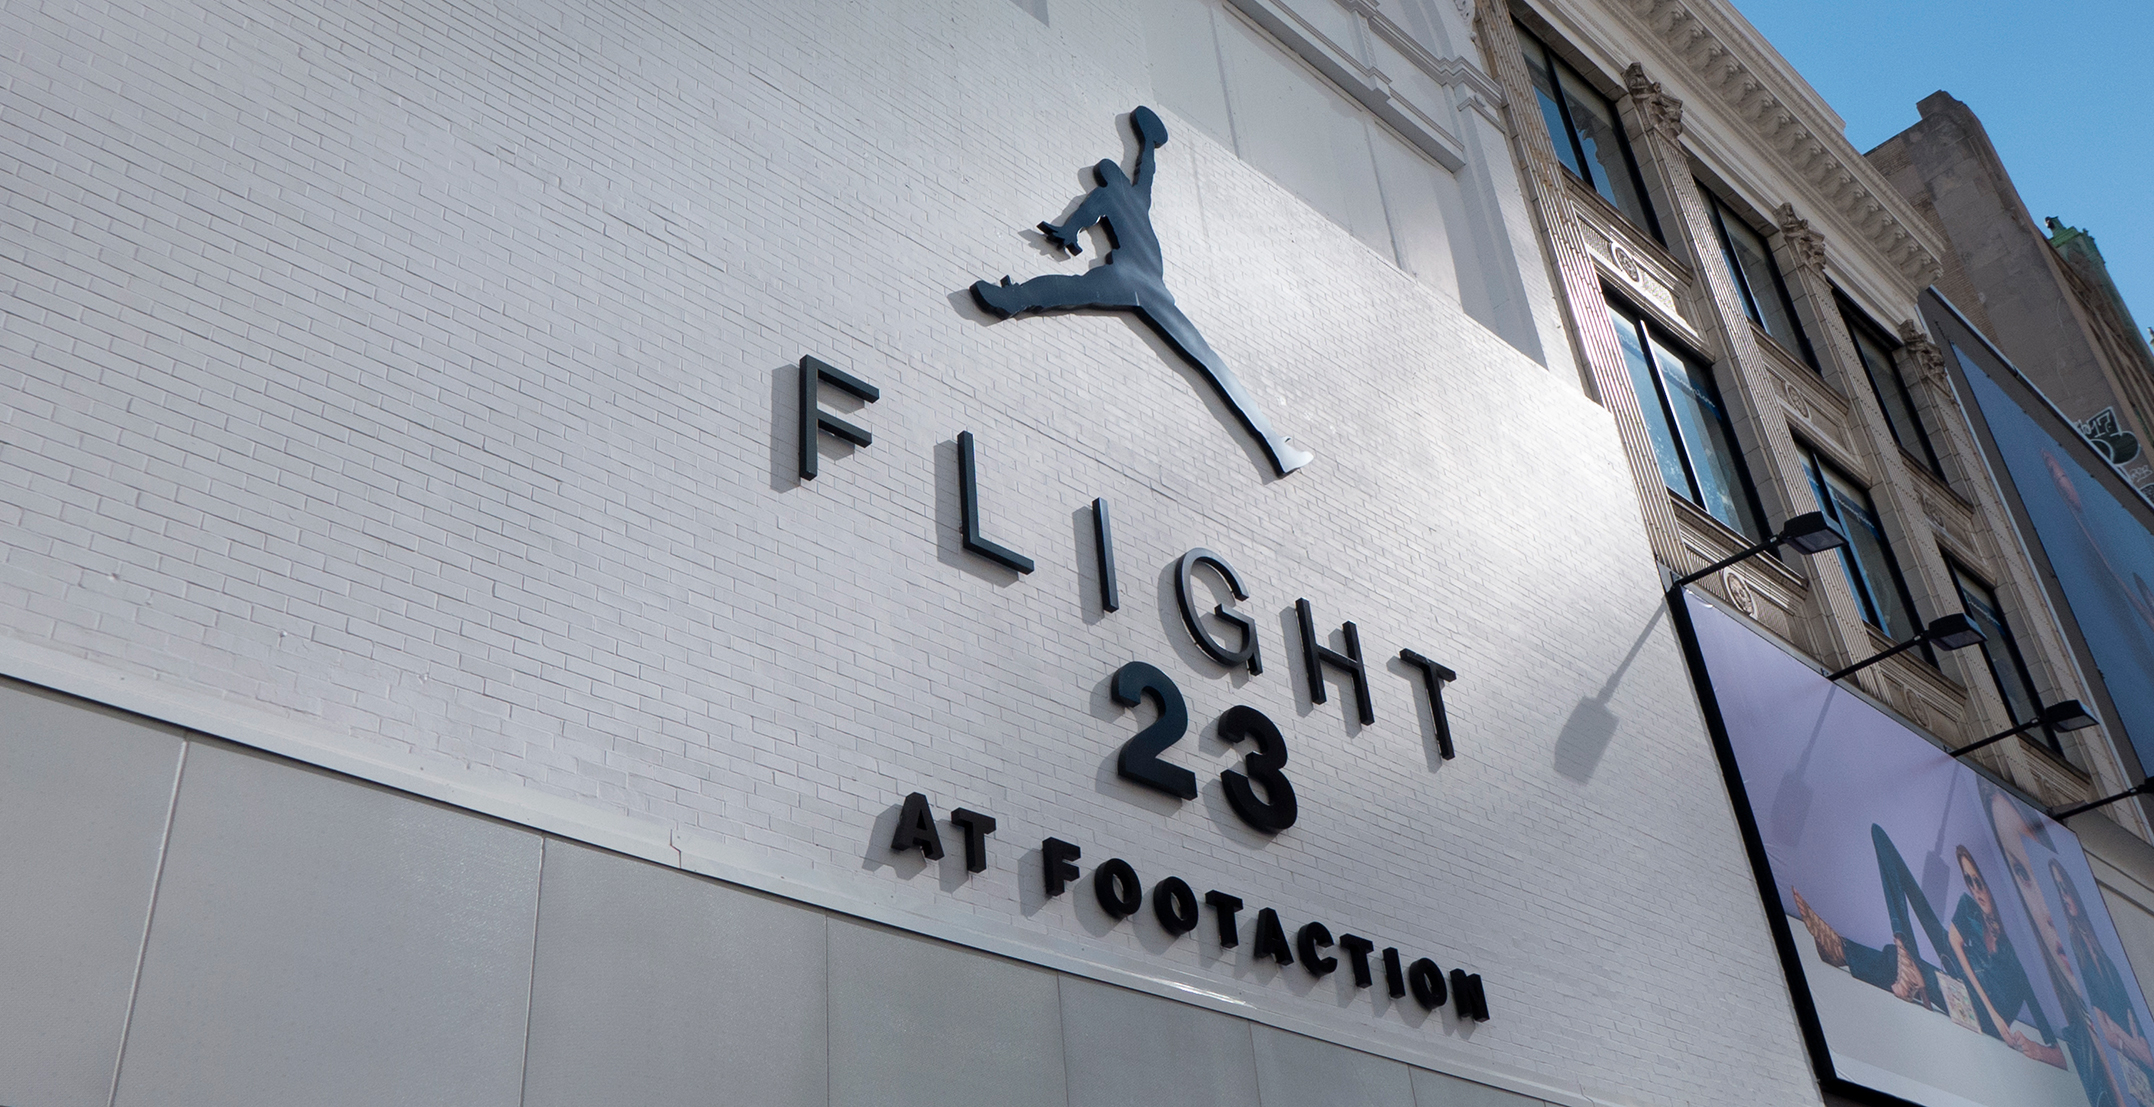 Flight 23 at Footaction - Downtown Brooklyn